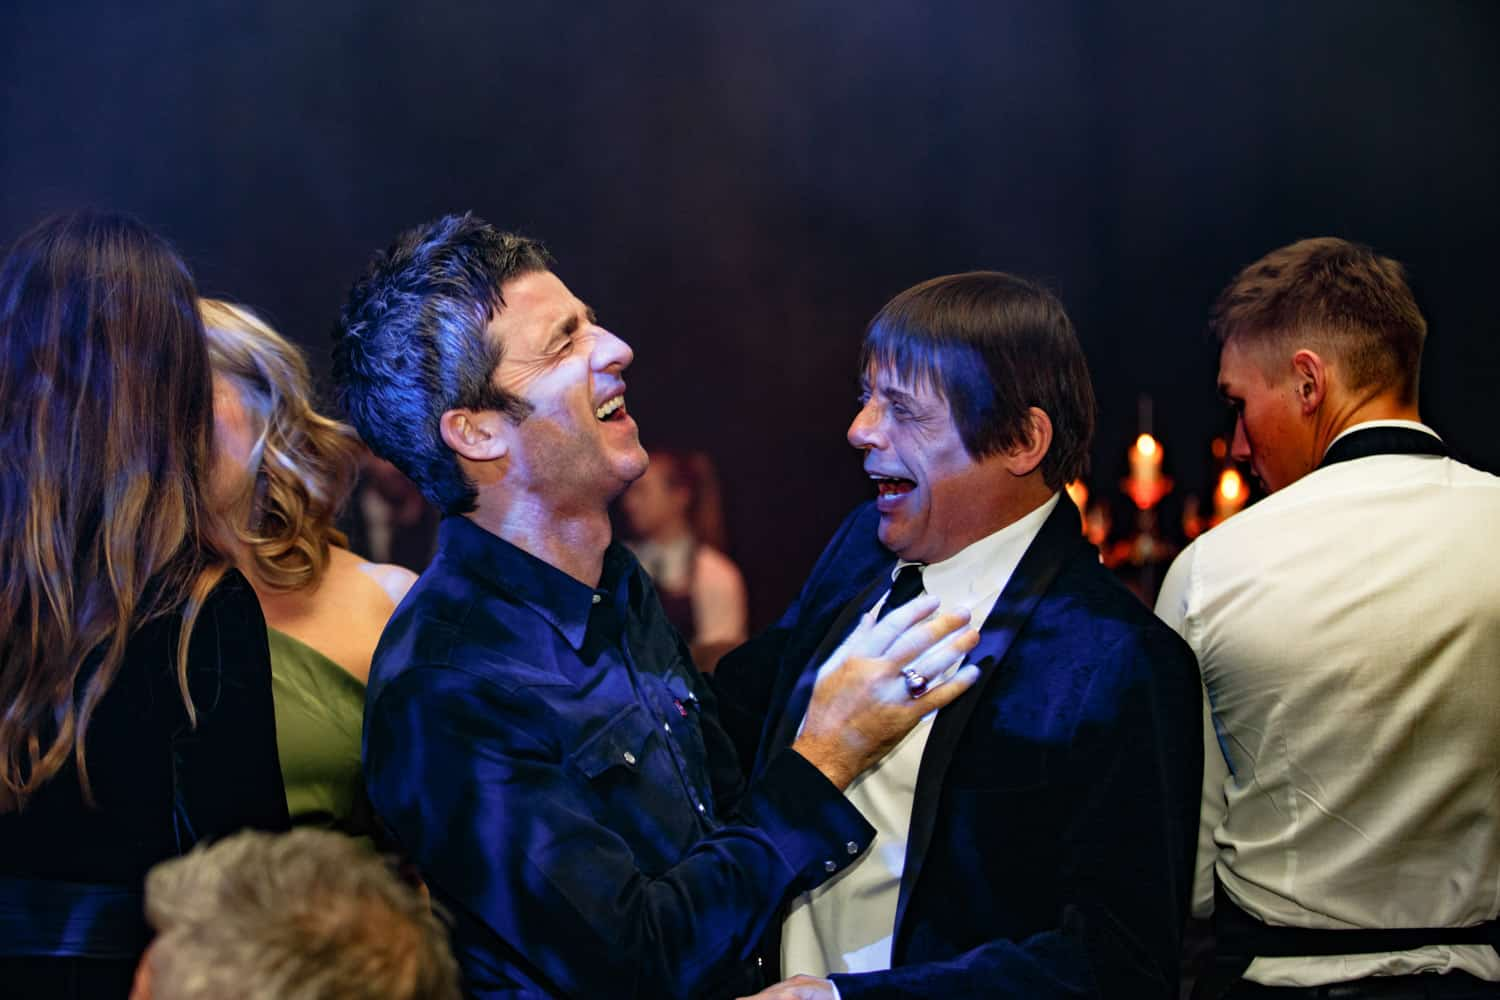 noel gallagher and stone roses having a laugh